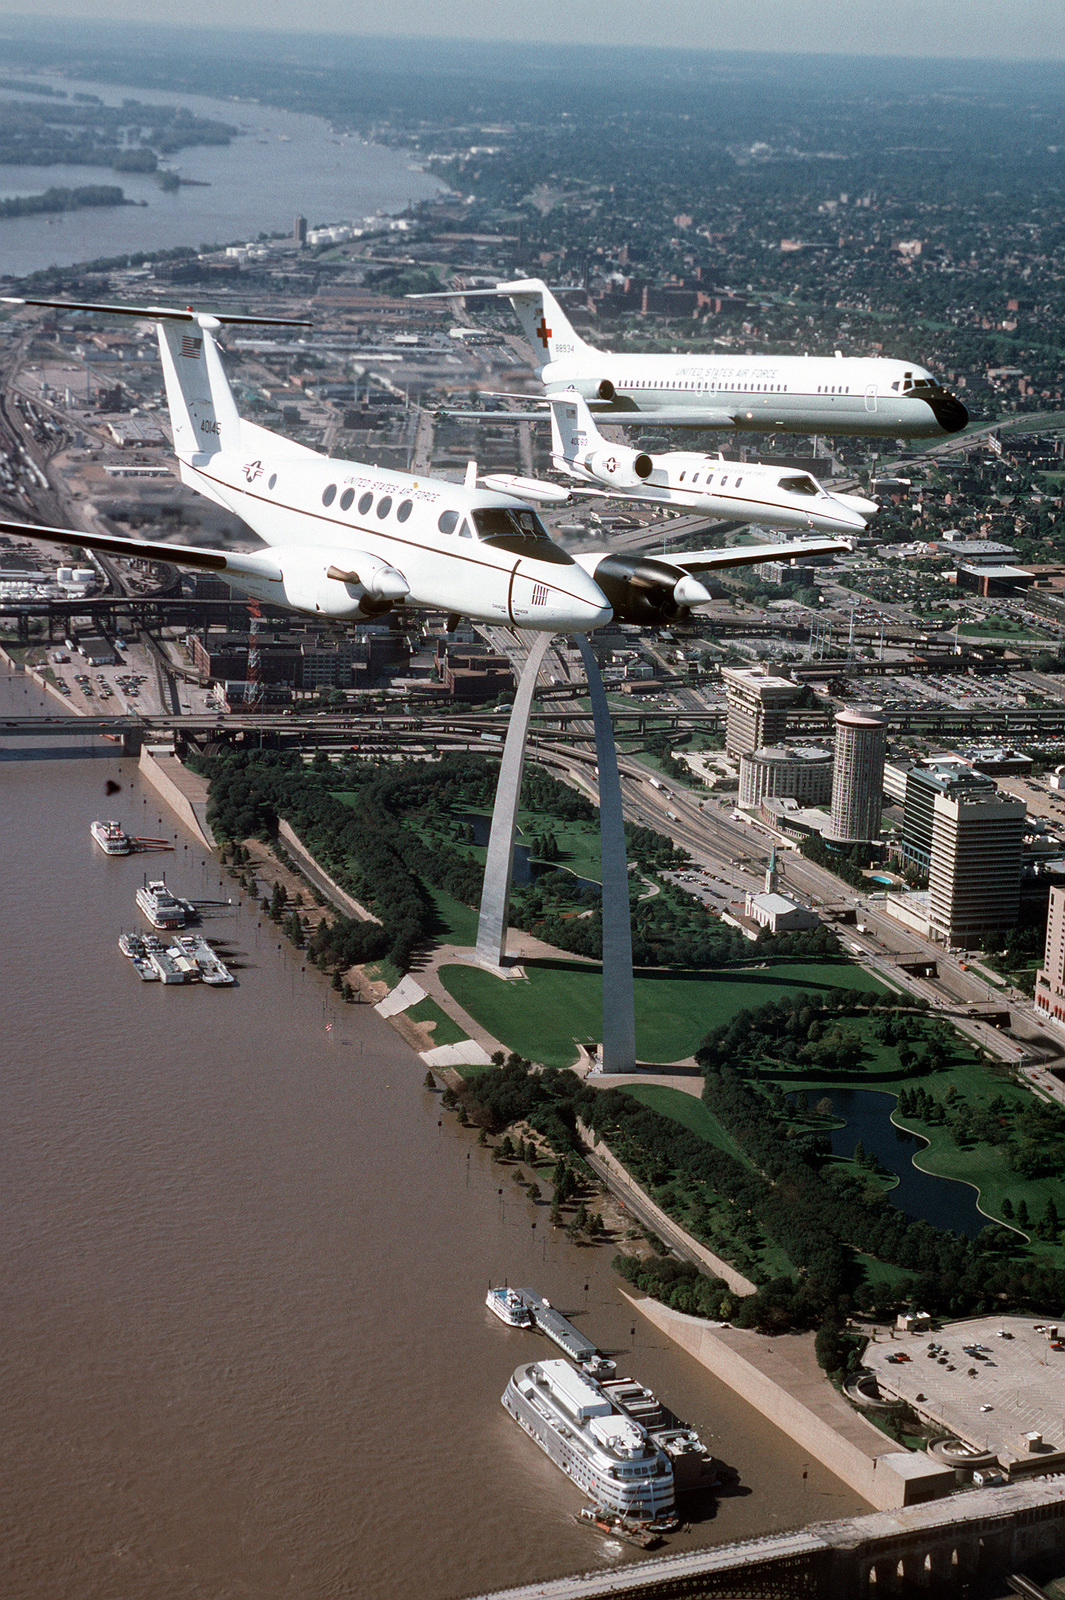 An air-to-air, three quarter front view of a Beech Aircraft built C-12F with a Lear Jet built C-21A and a McDonnell Douglas-built C-9A Nightingale aircraft, flying off the left wing of the C-12F. All aircraft are from the 375th Airlift Wing, Air Mobility Command and are flying over the St. Louis Arch, on the banks of the Mississippi River, and Busch stadium during a training mission